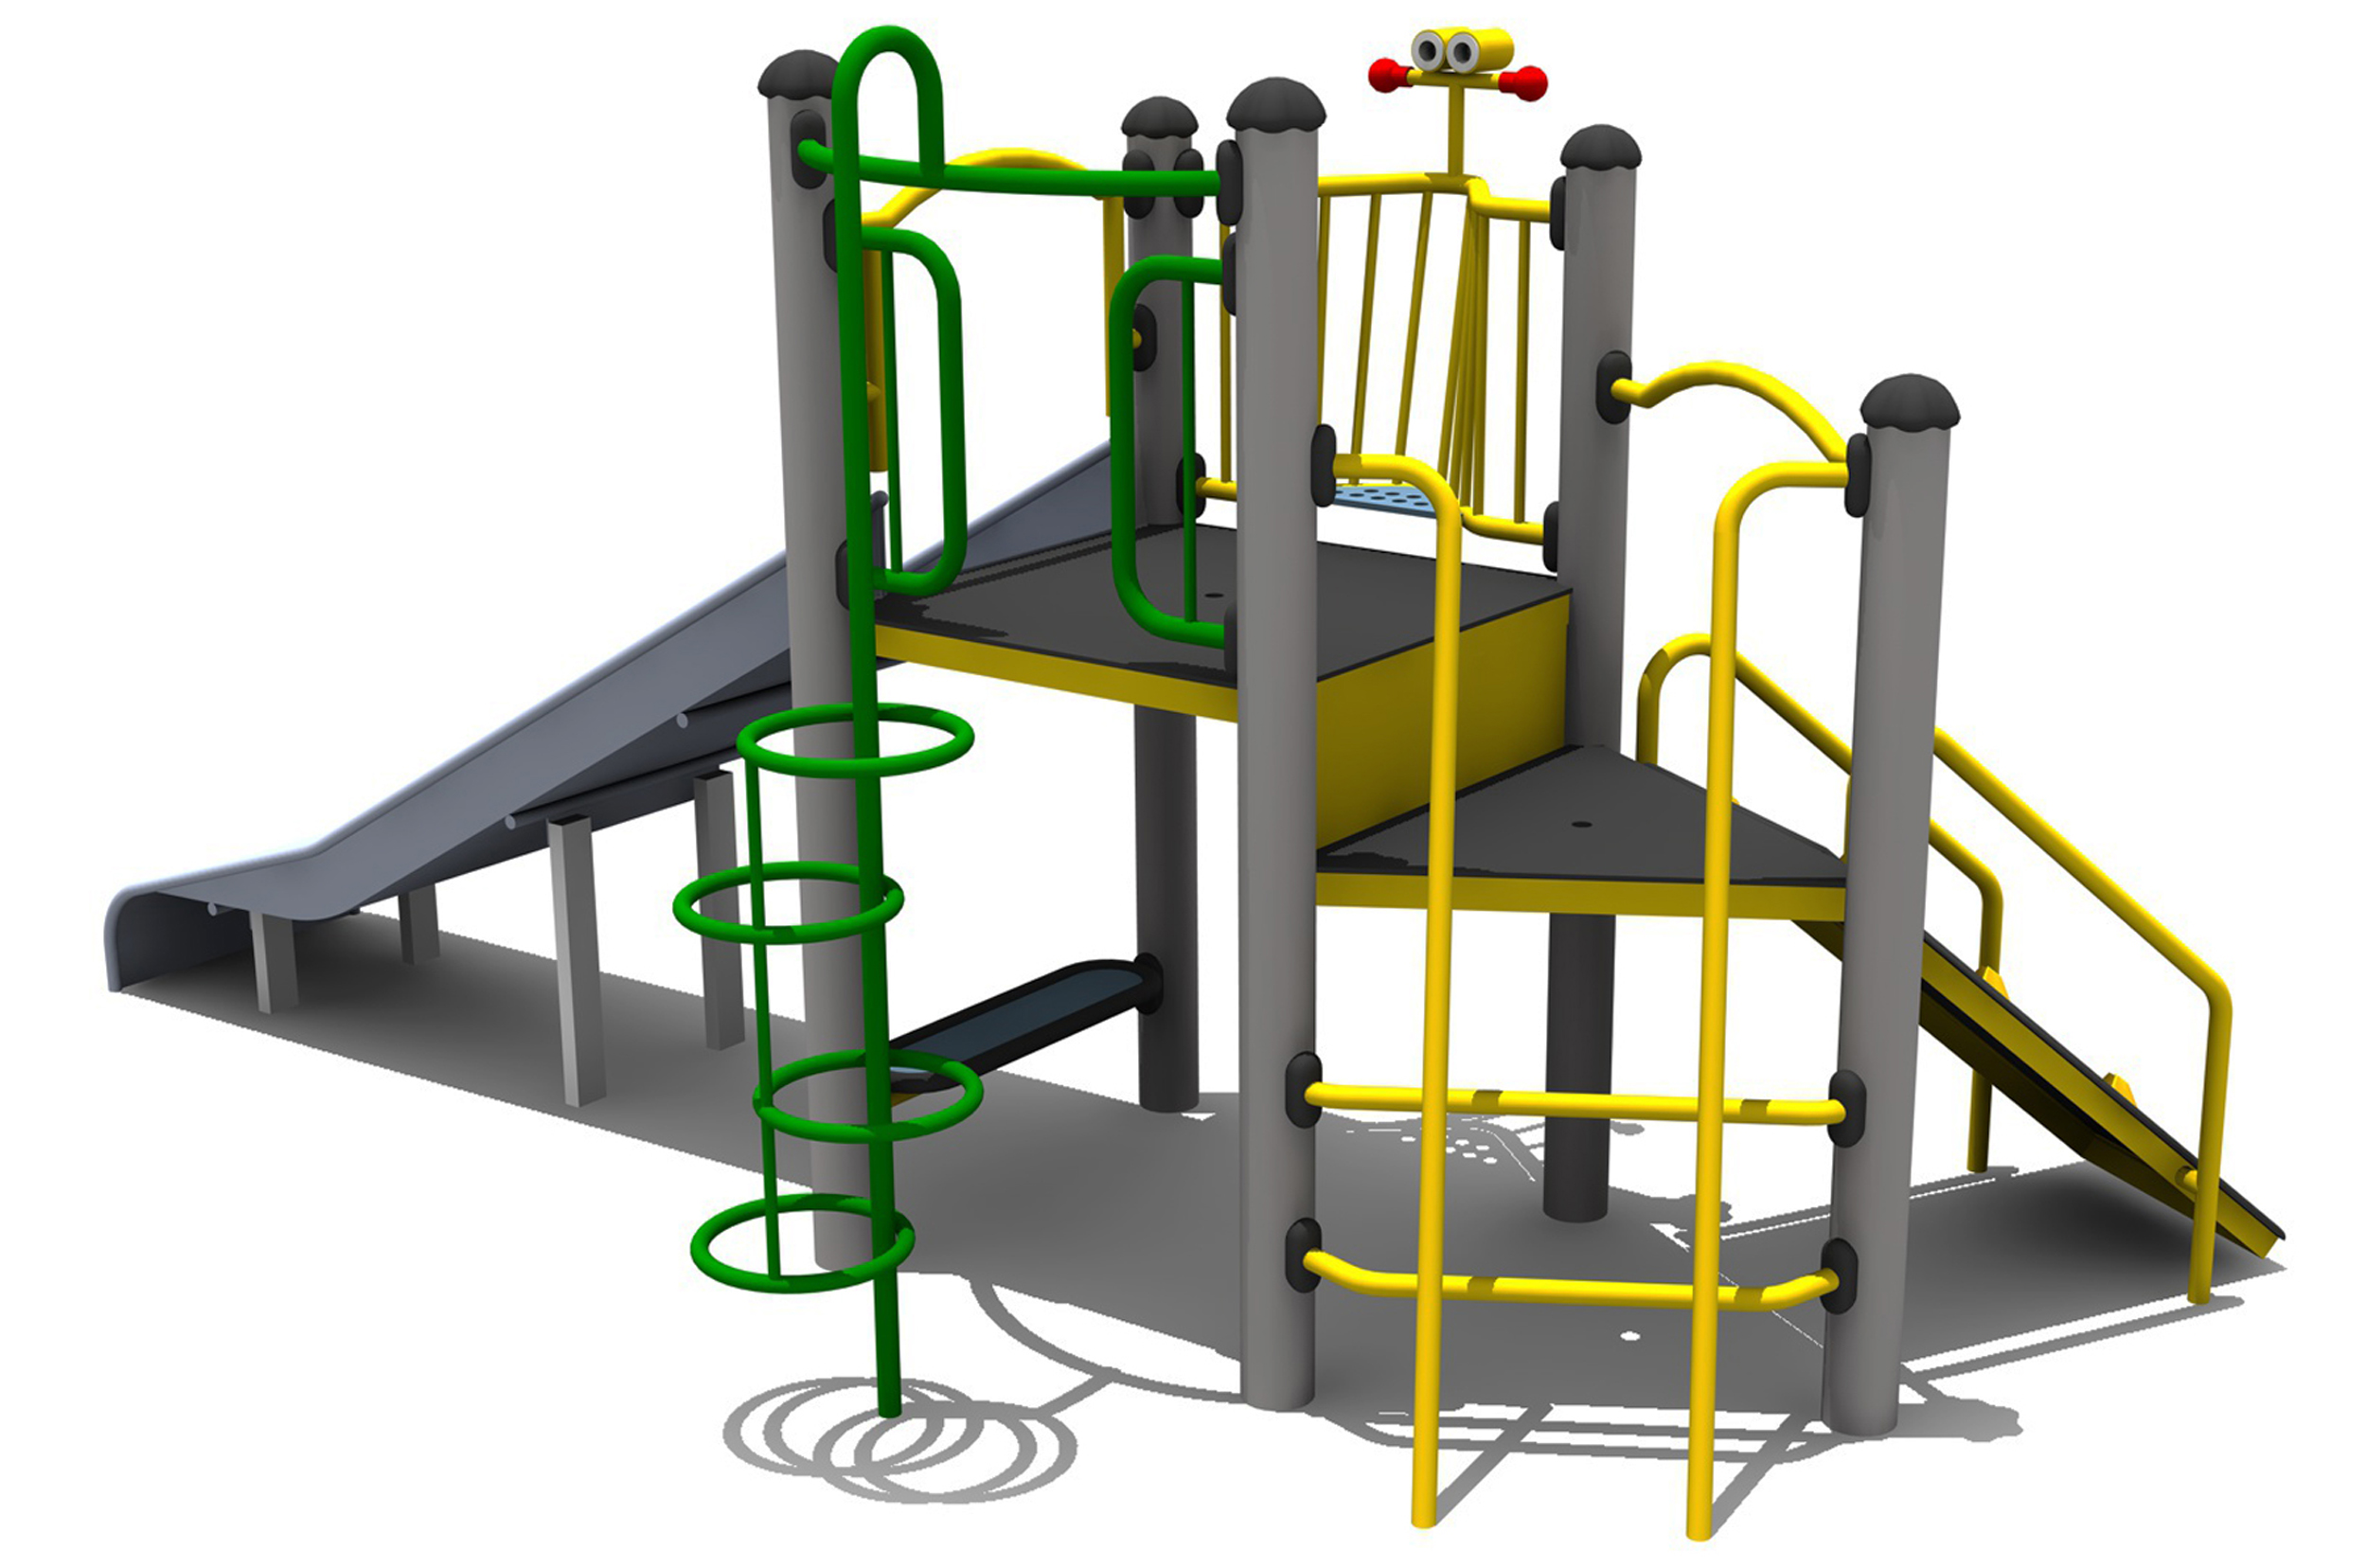 a set of aluminium posts hold up two platforms climbing ladders and ring climber all access the platforms and a wide steel slide